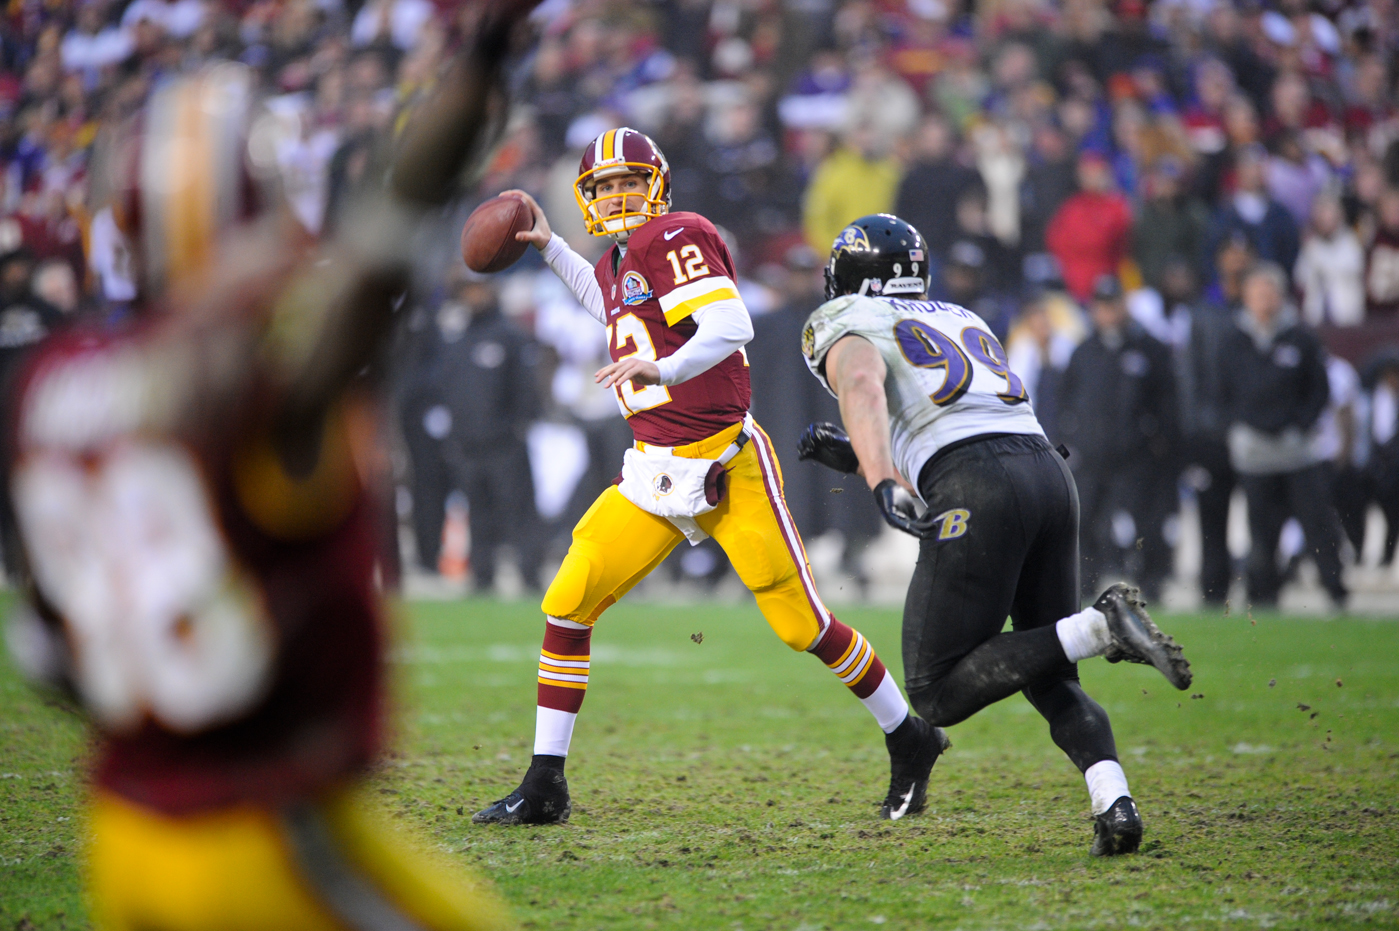 Redskins quarterback Kirk Cousins rolls out of the pocket and delivers a pass to receiver Pierre Garcon, who was wide open in the corner of the end zone.